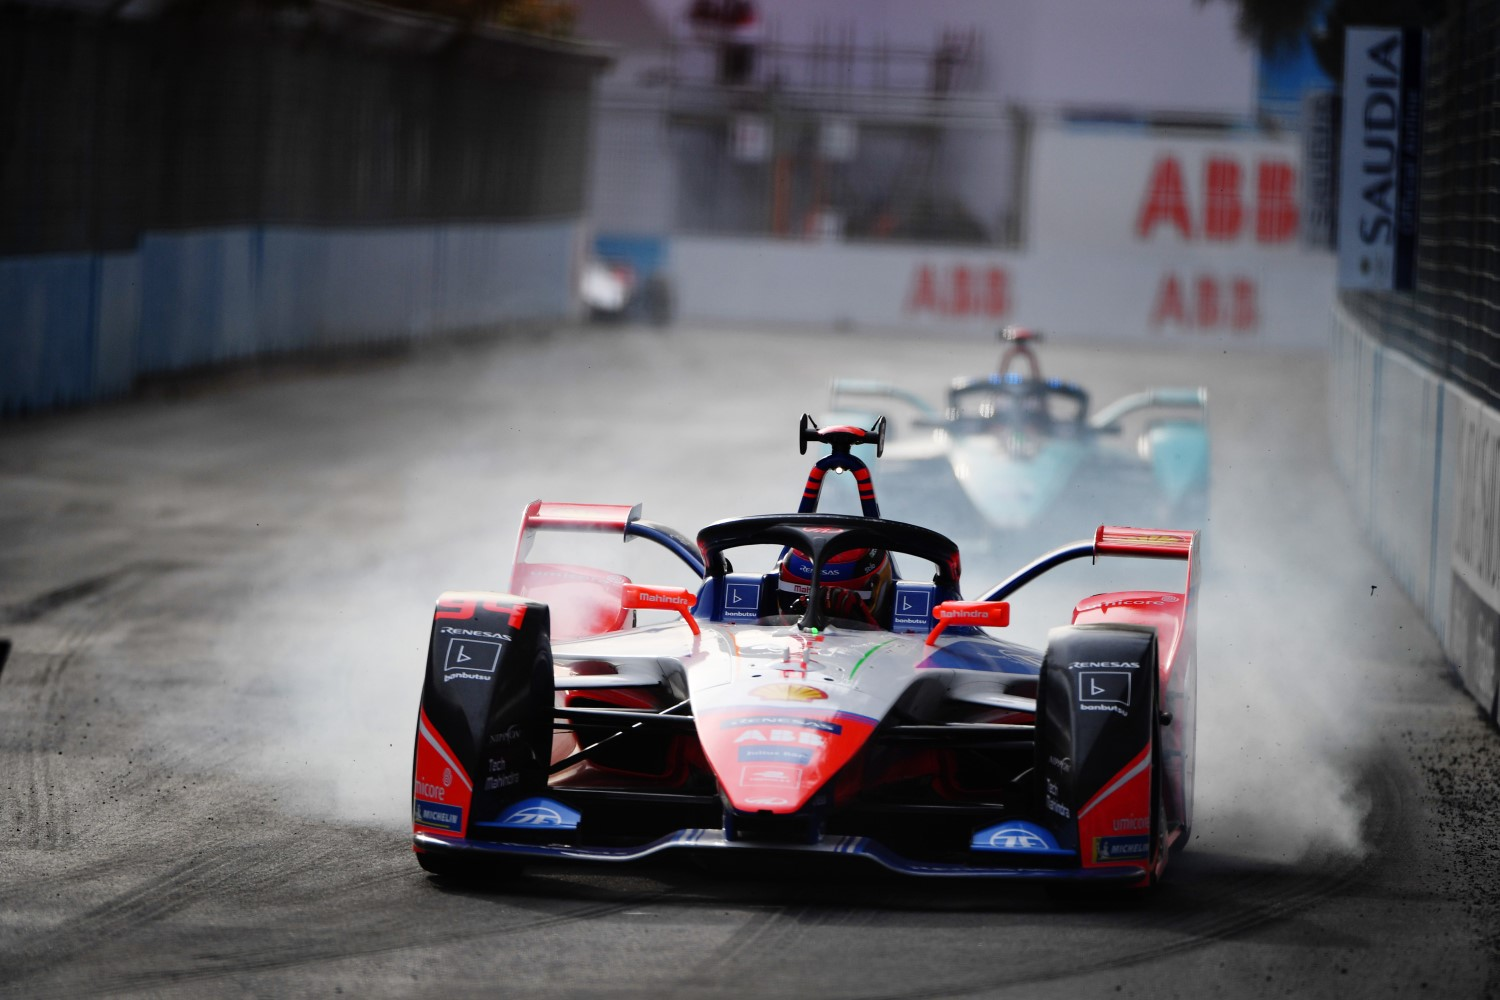 Pascal Wehrlein - in Formula E now - locks brakes in opening race